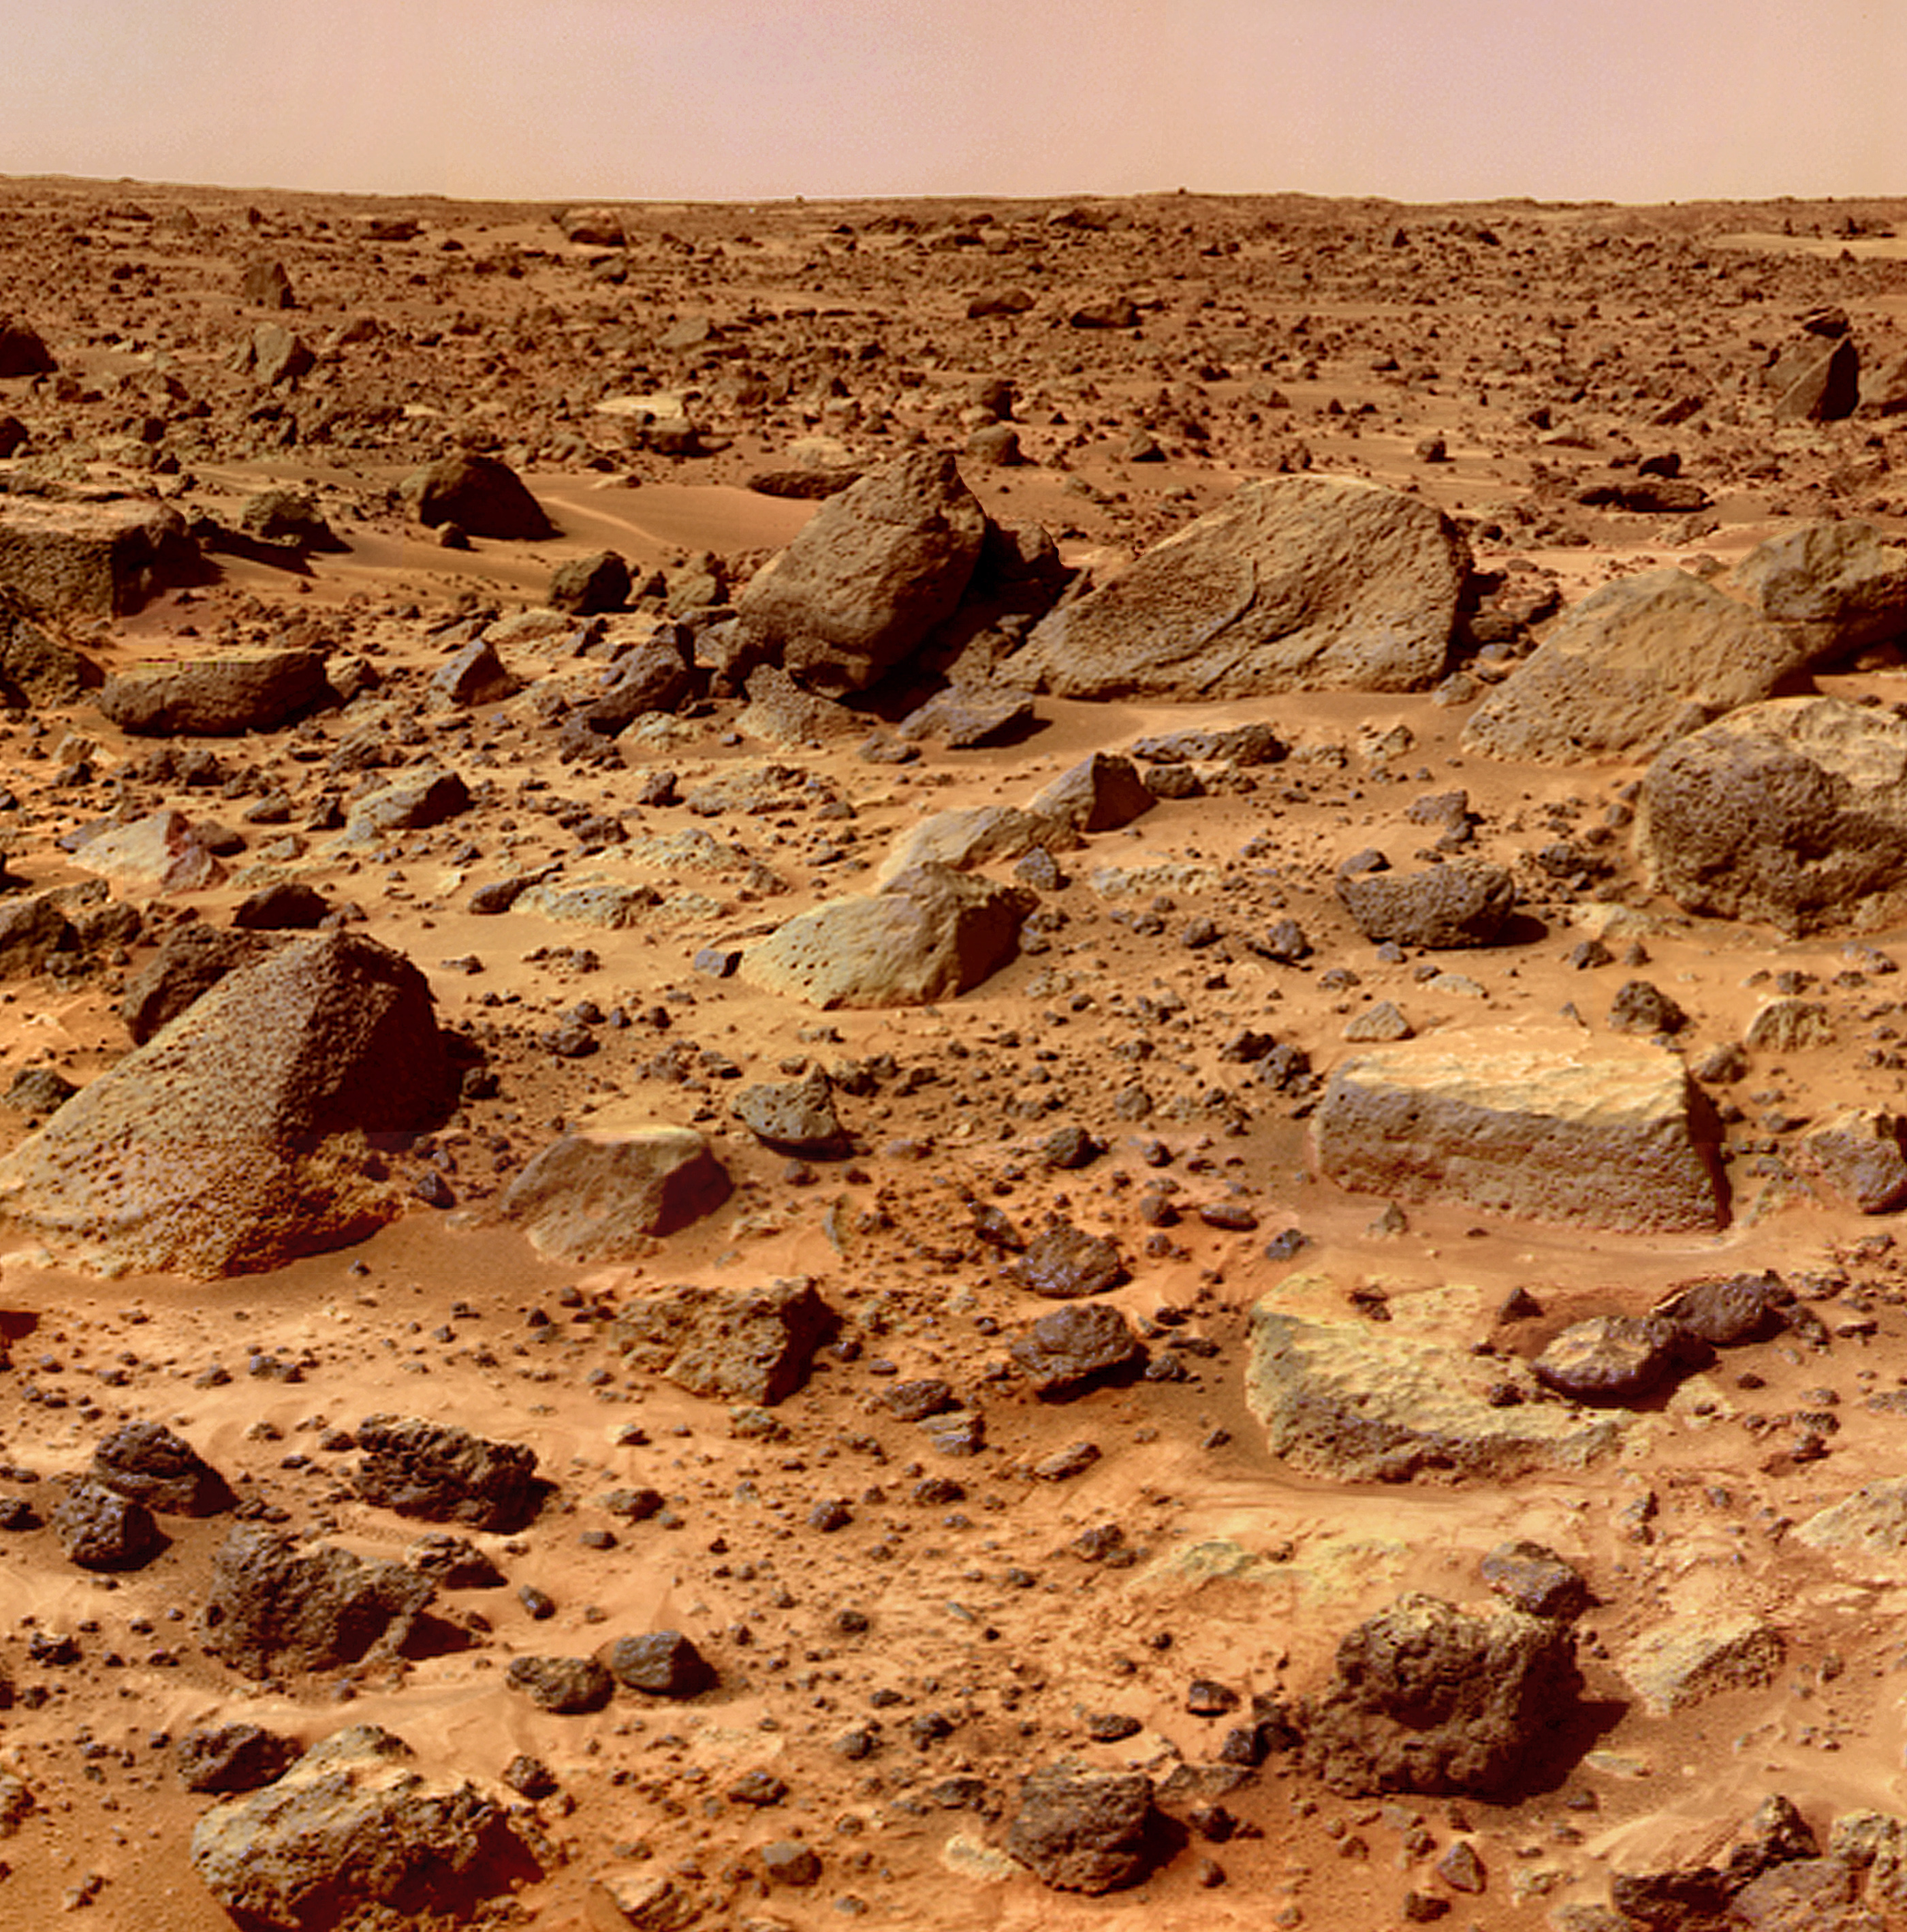 mars simple english the encyclopedia surface rocks everywhere photographed by mars pathfinder